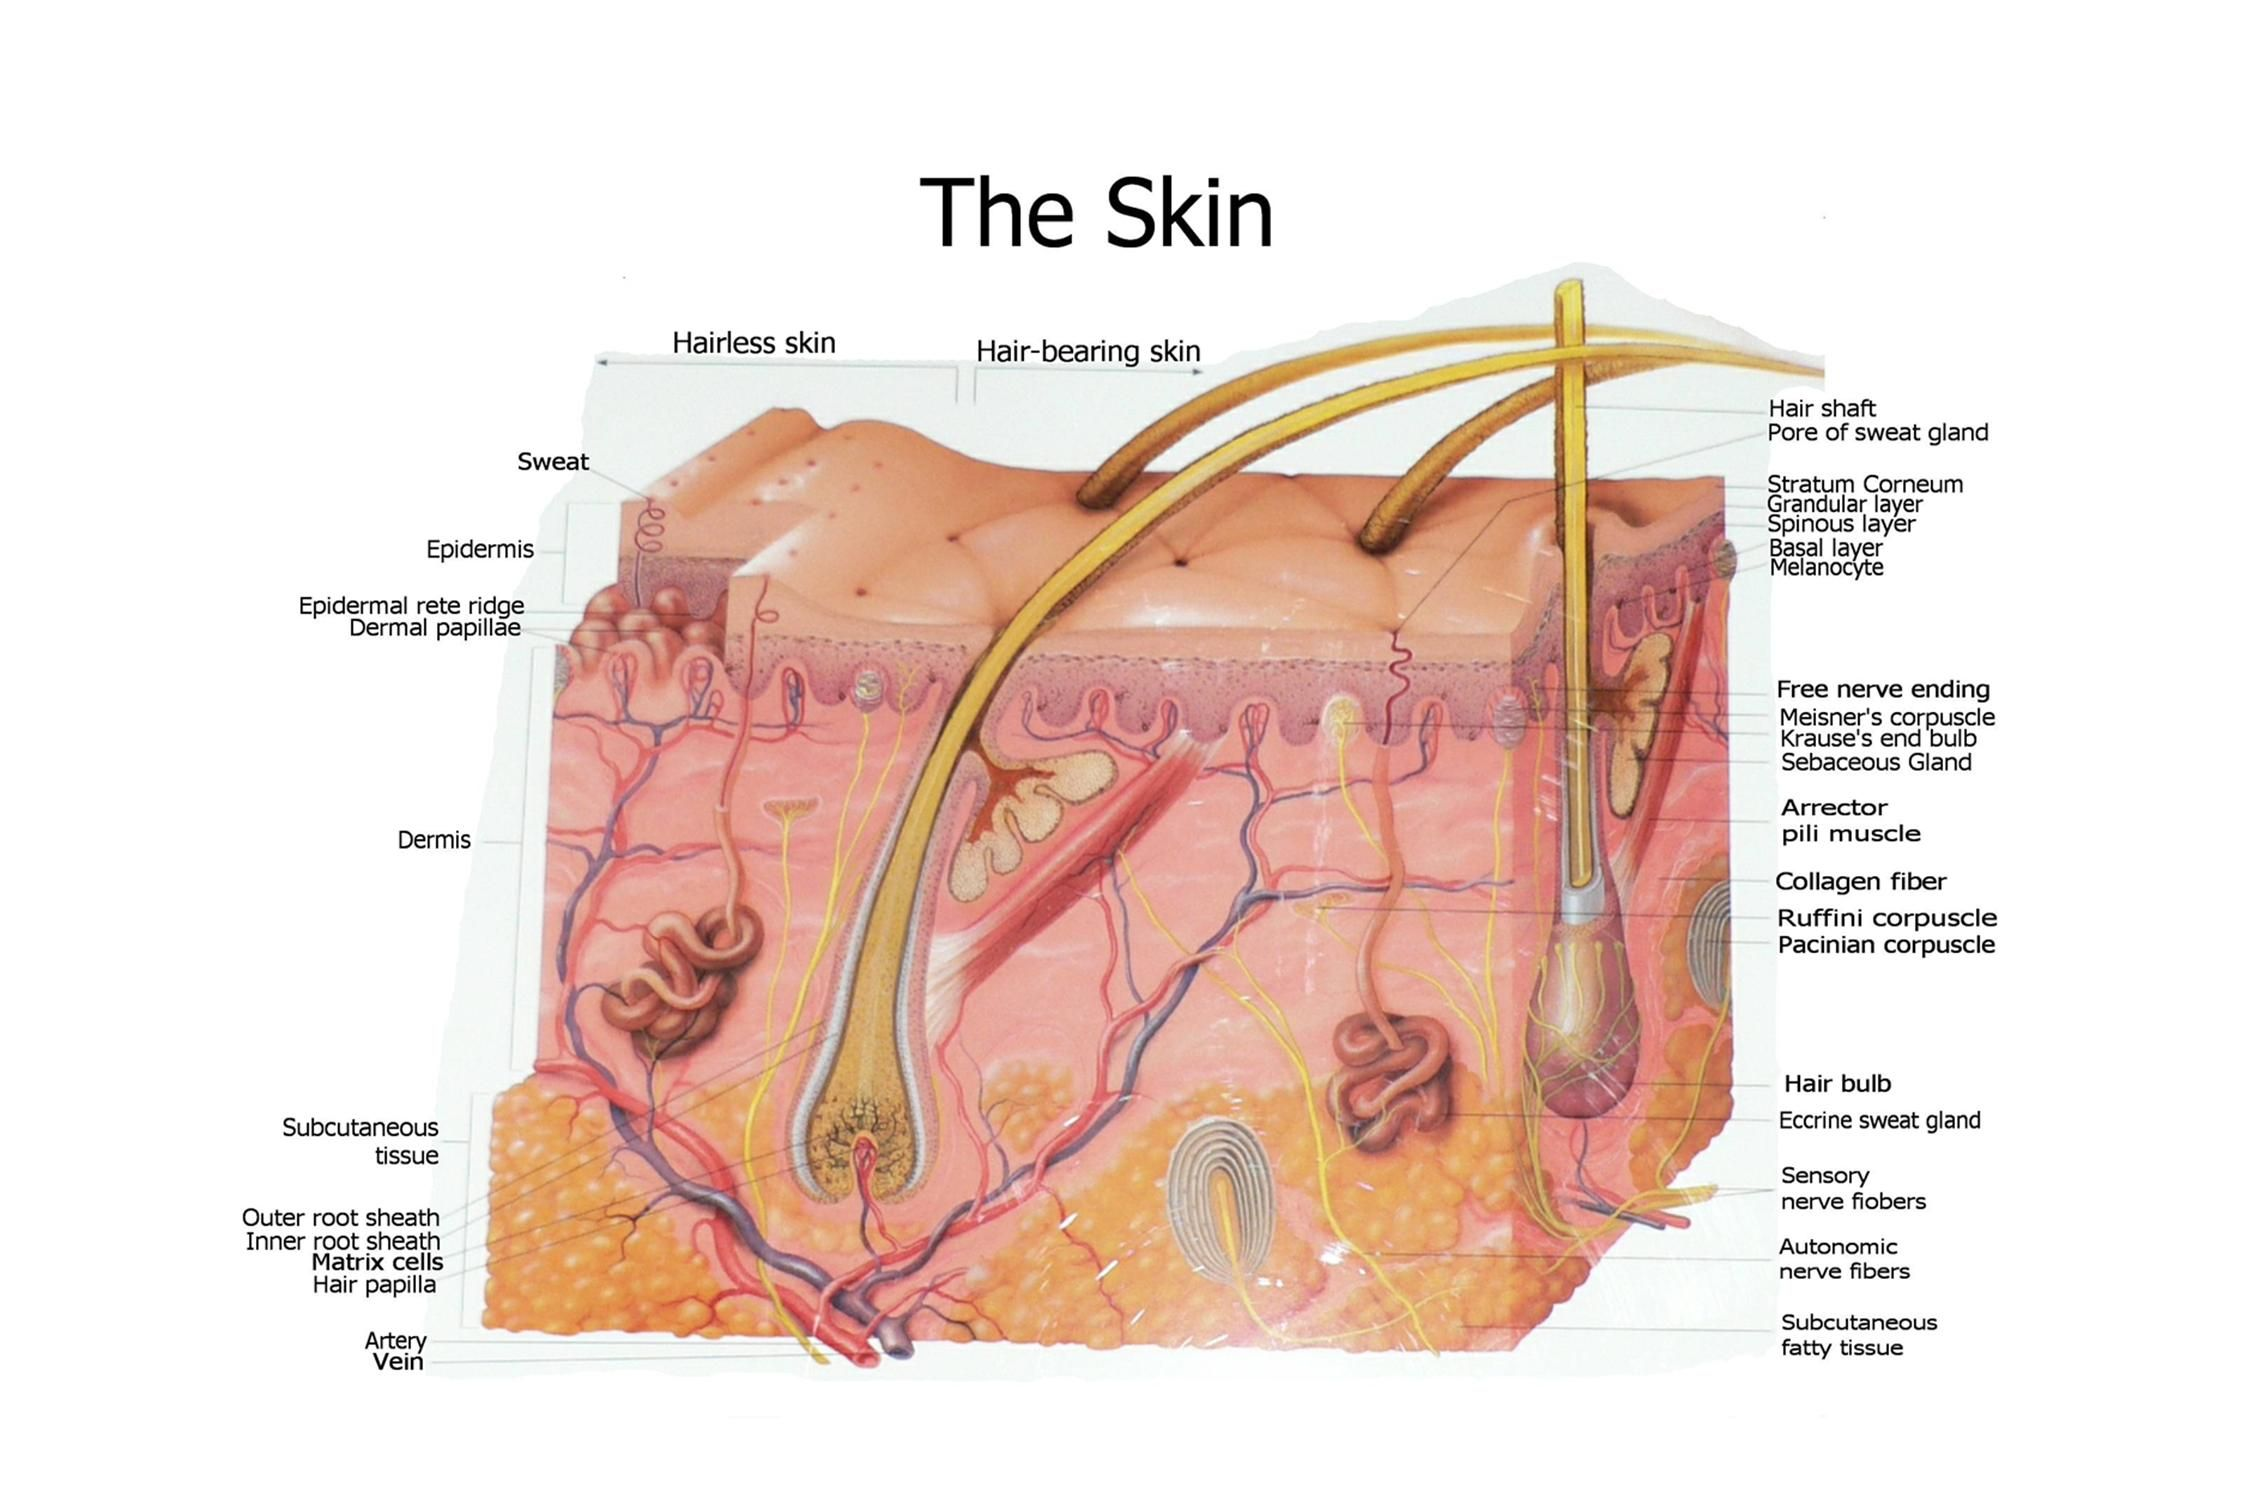 hight resolution of skin anatomy muscular system health pictures skin problems diagram surgery